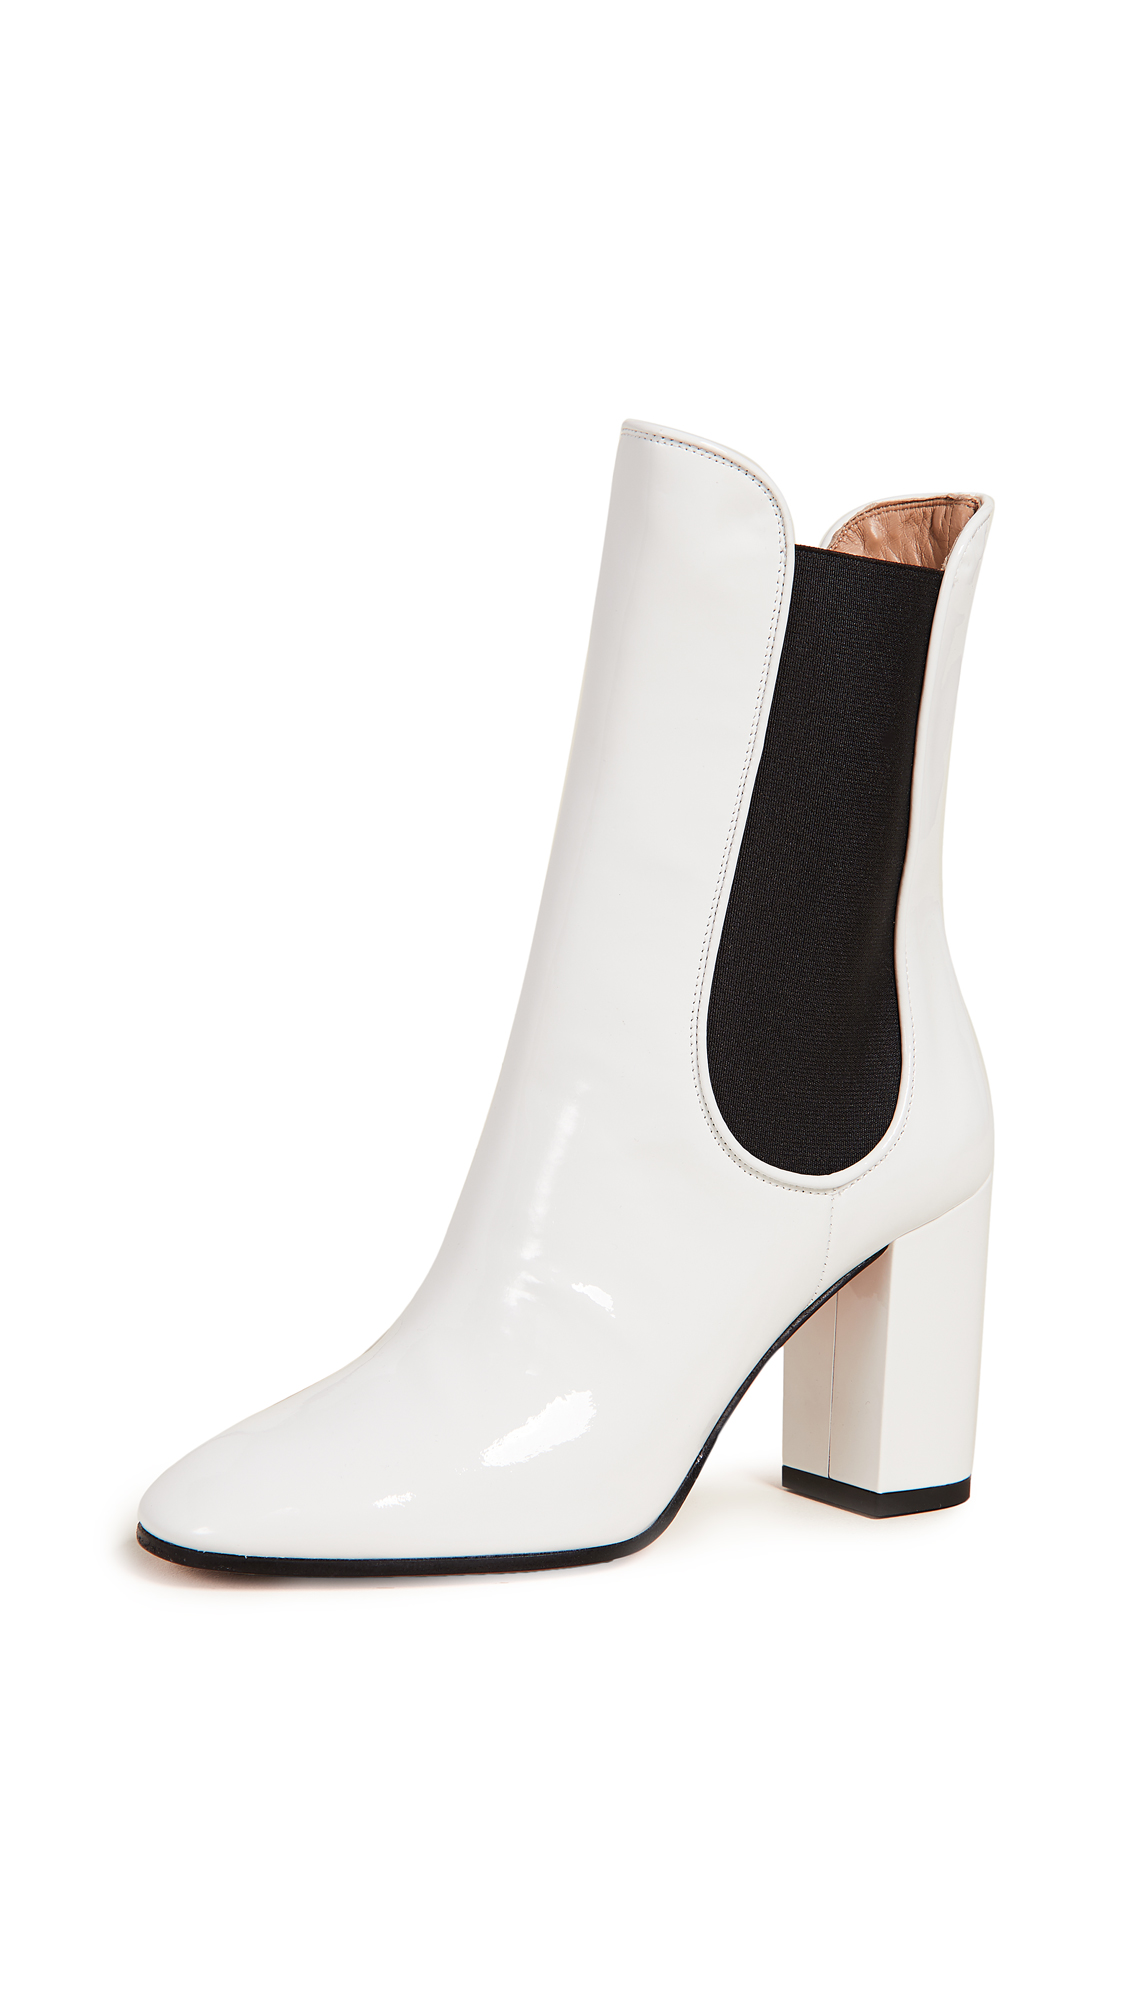 Aquazzura Kilian 85mm Booties - White